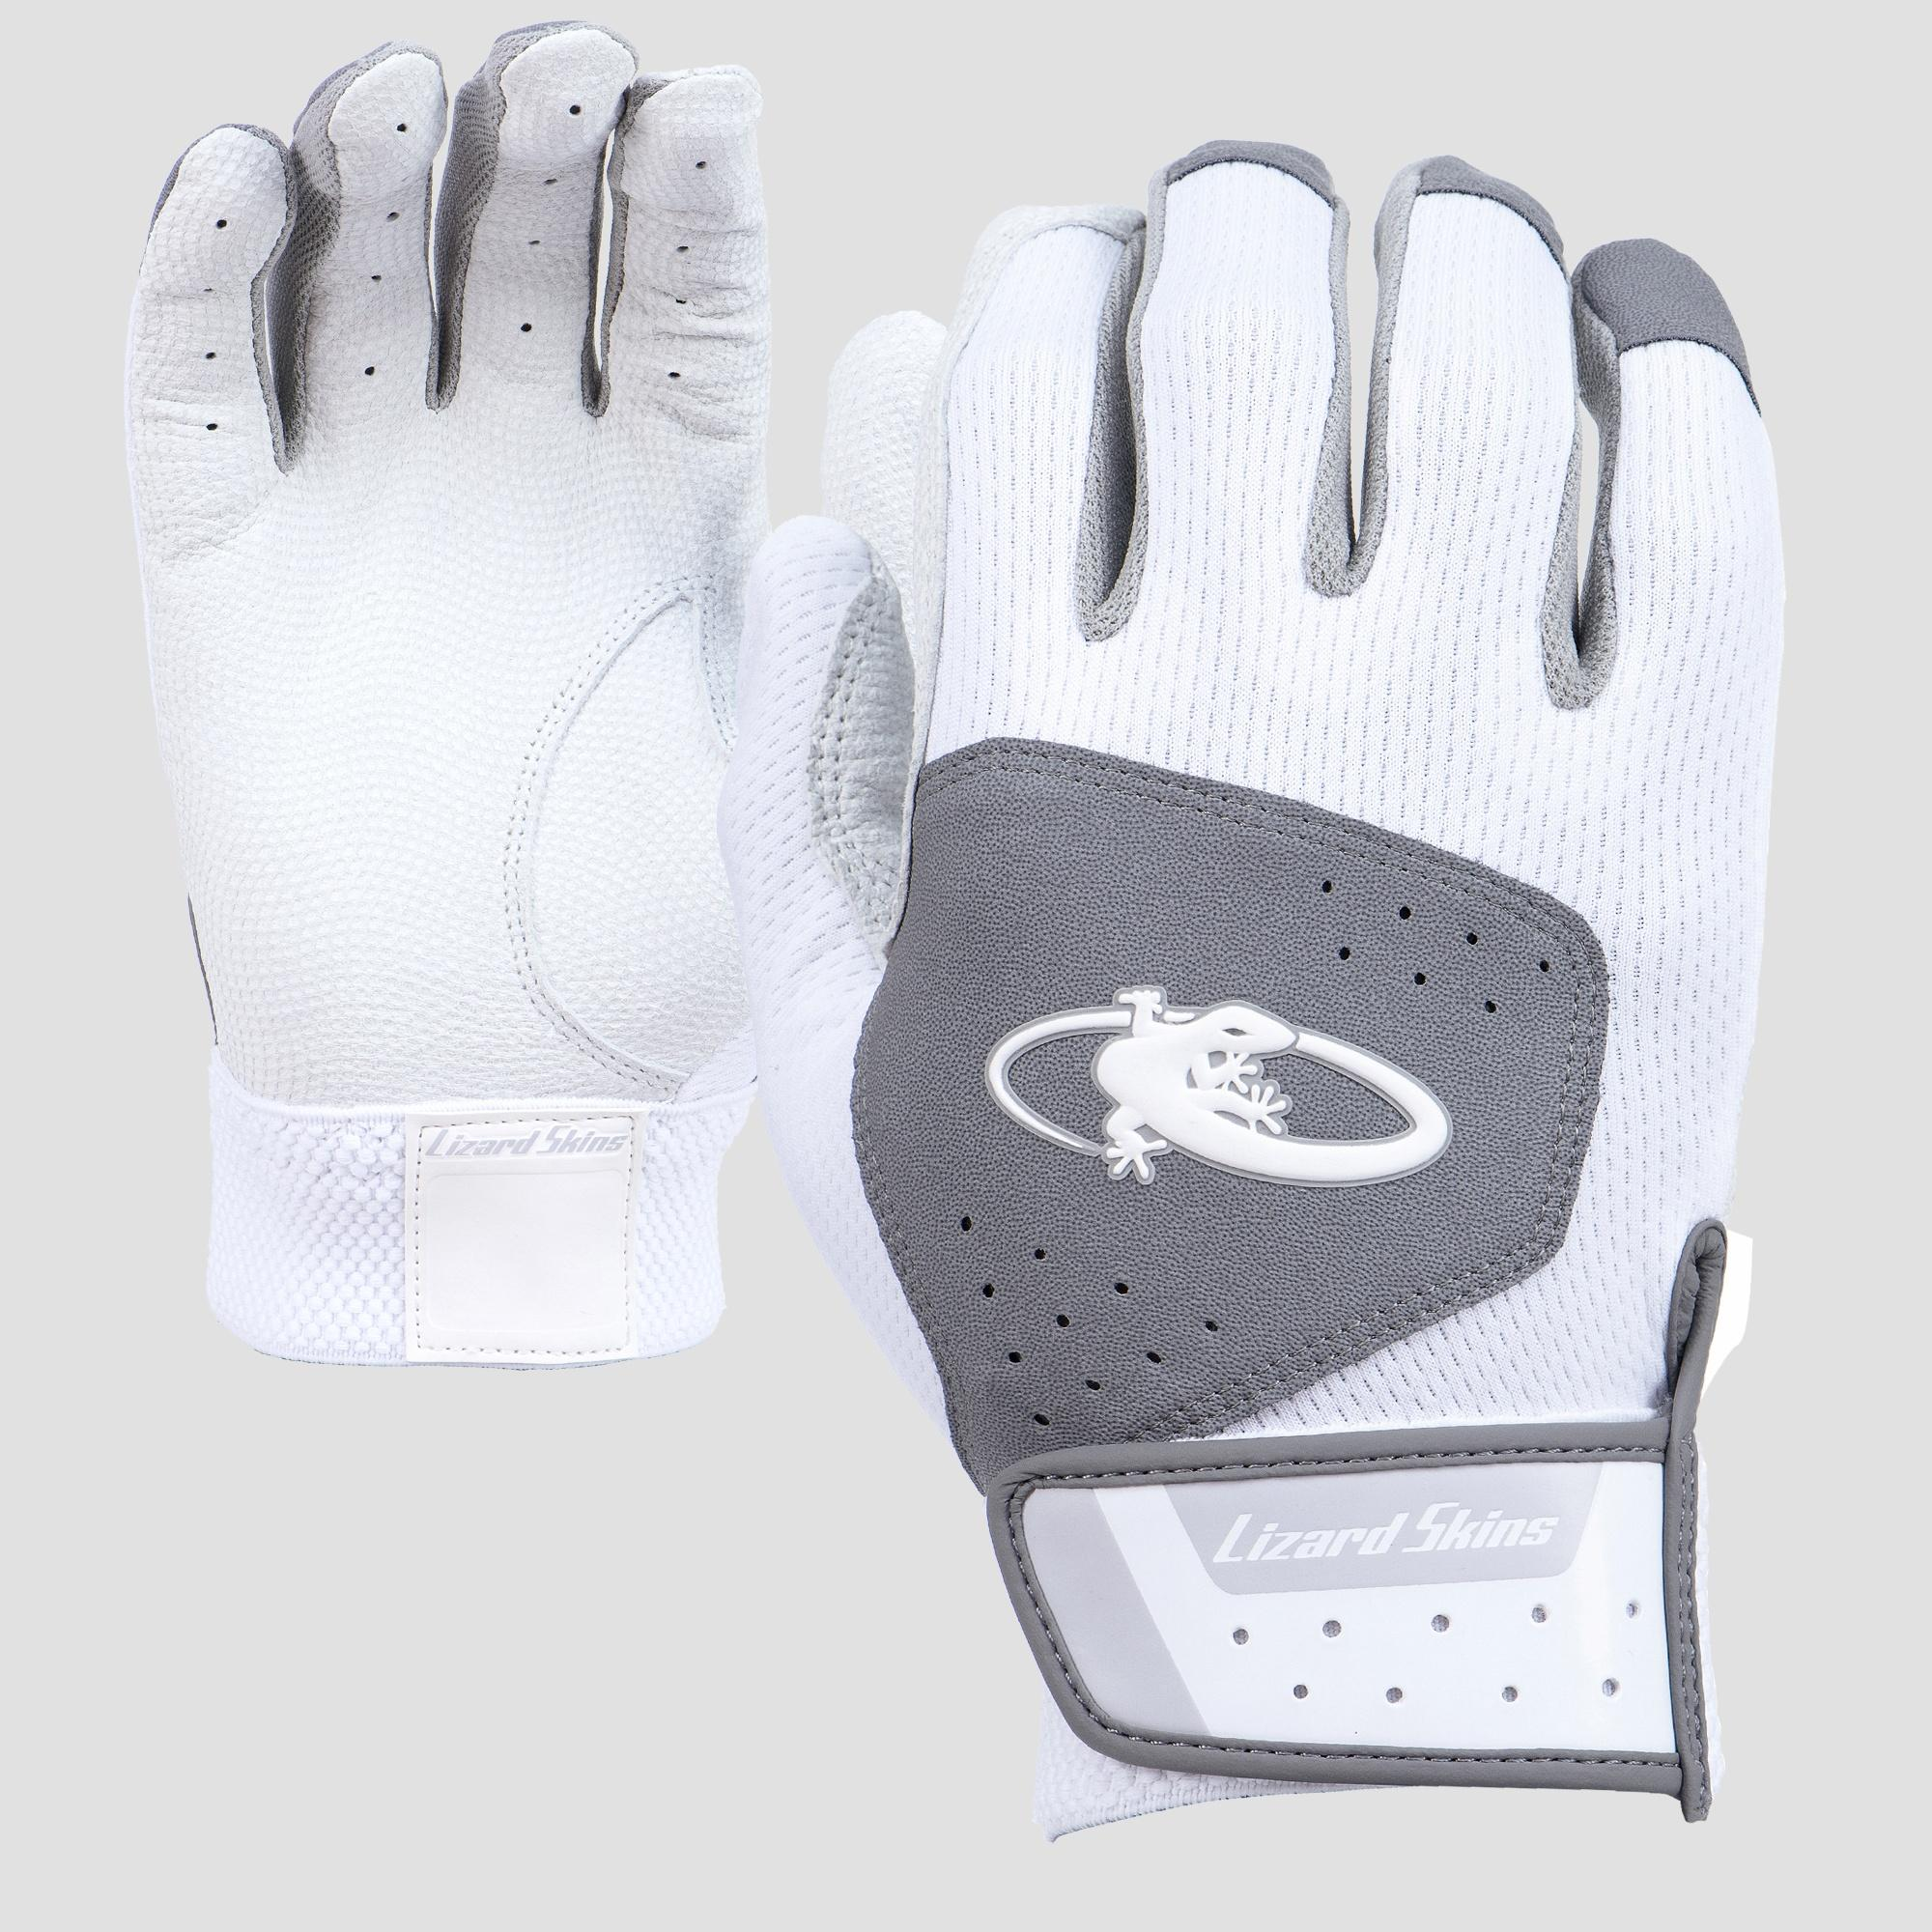 AKOM-W Lizard Skins Adult Komodo Batting Gloves - White/Gray THUMBNAIL